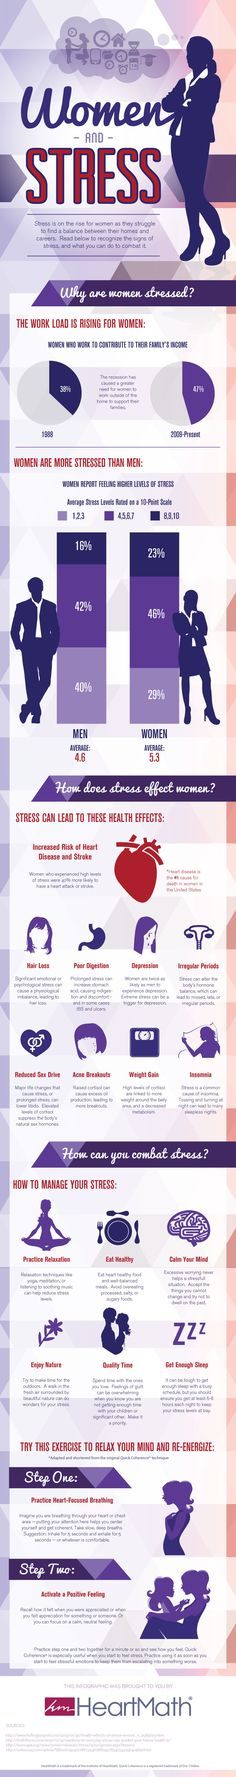 women-and-stress